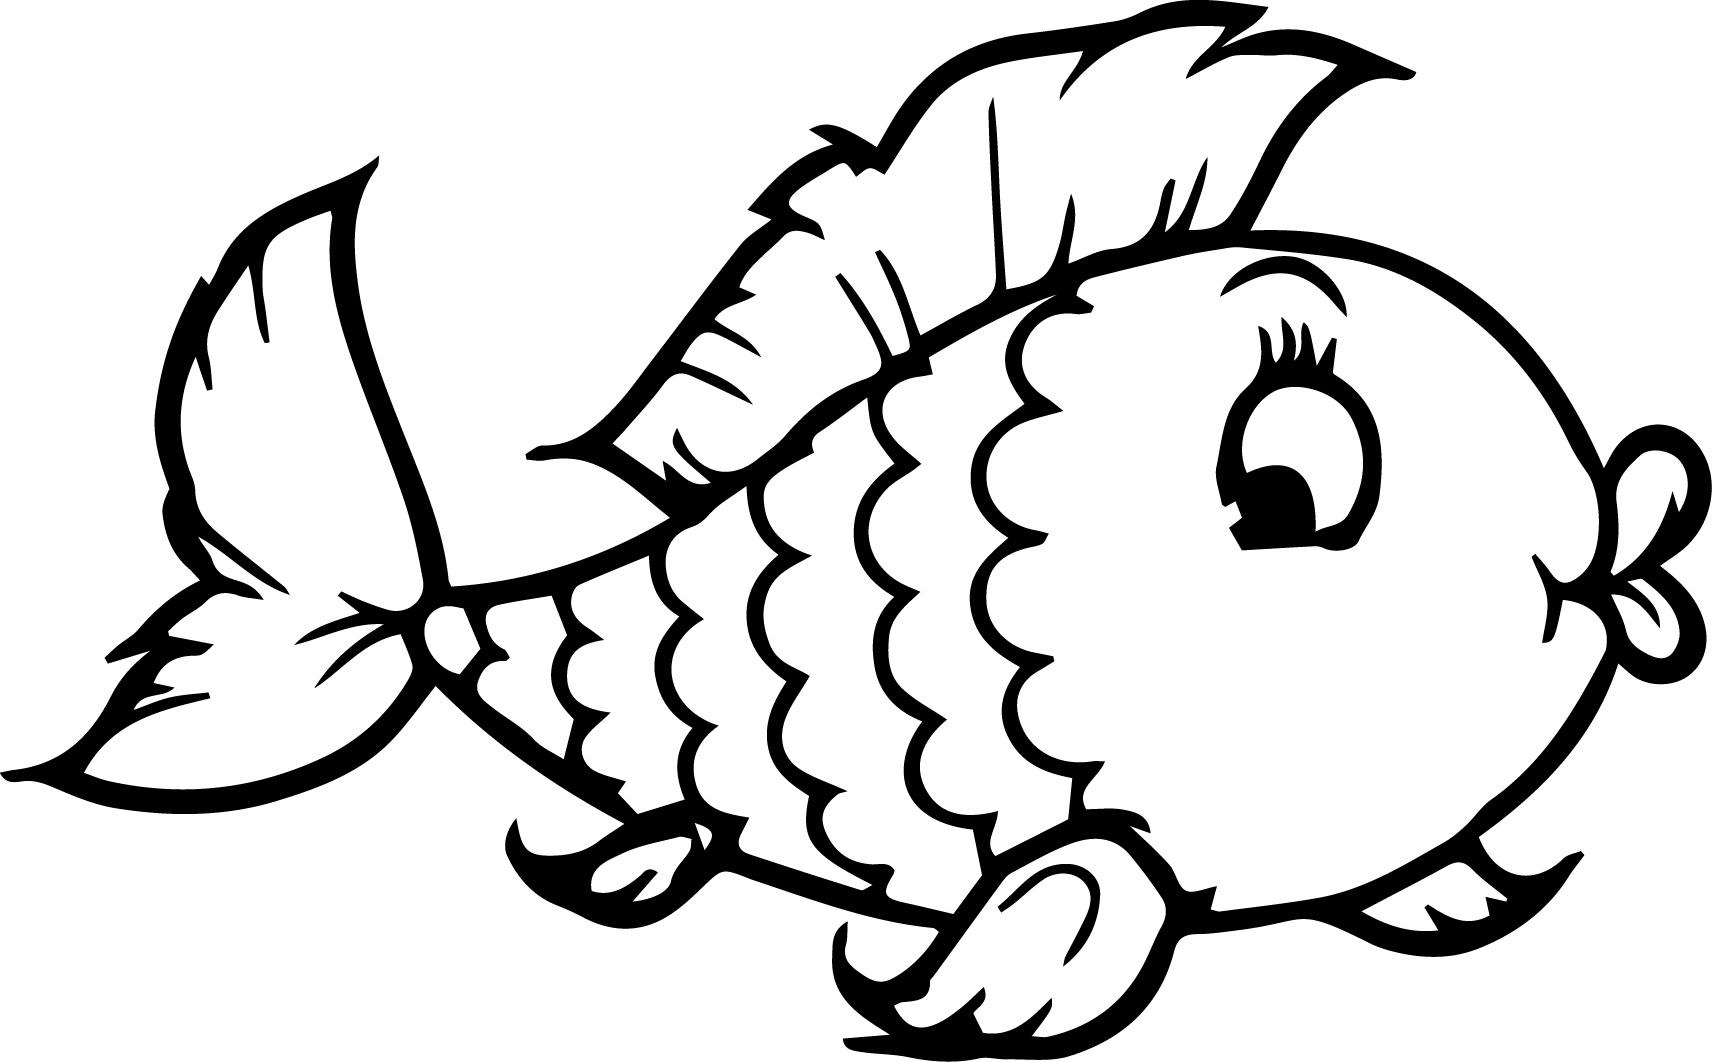 1712x1062 Preschool Coloring Sheet Py Cool Fish Coloring Pages For